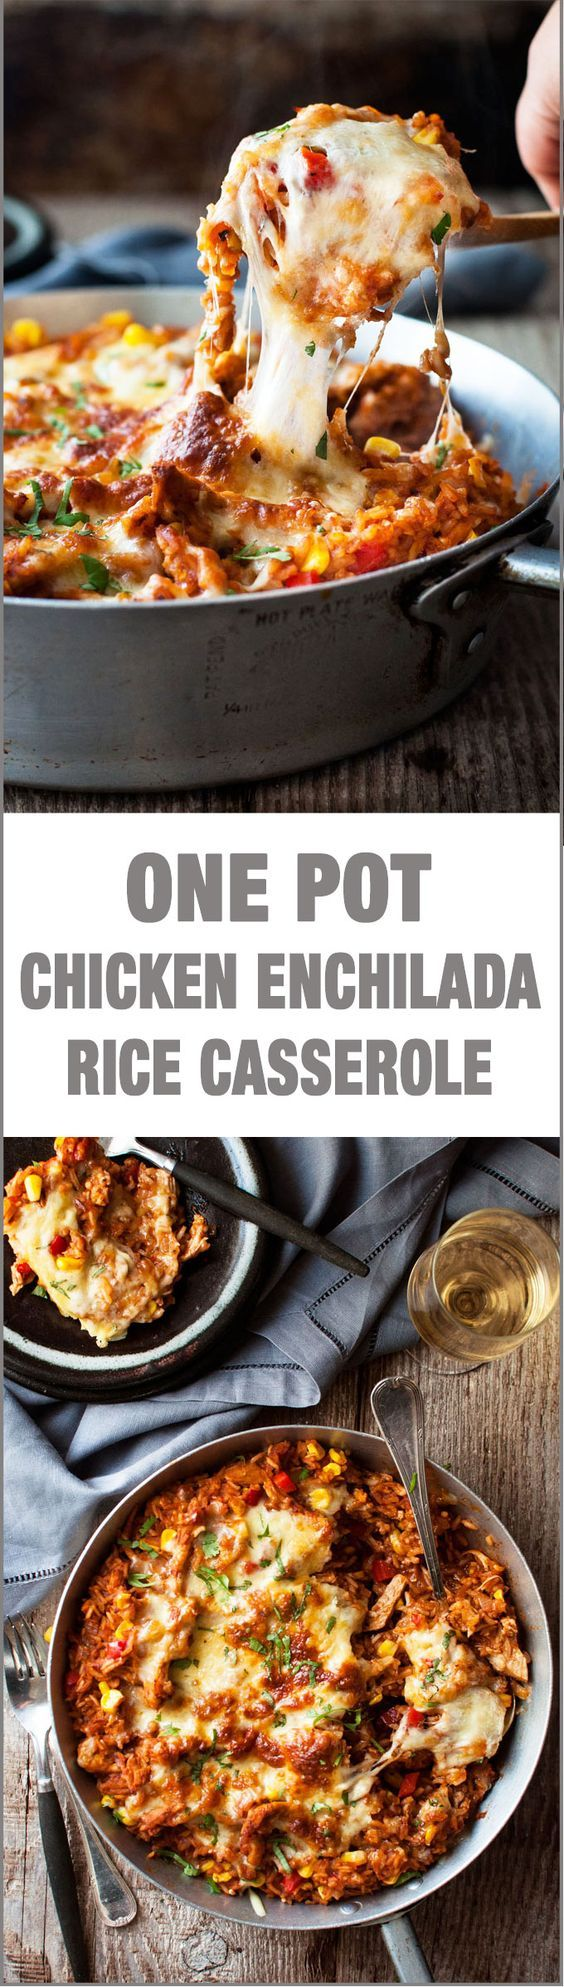 One Pot Chicken Enchilada Rice Casserole - the flavours of chicken enchilada in…